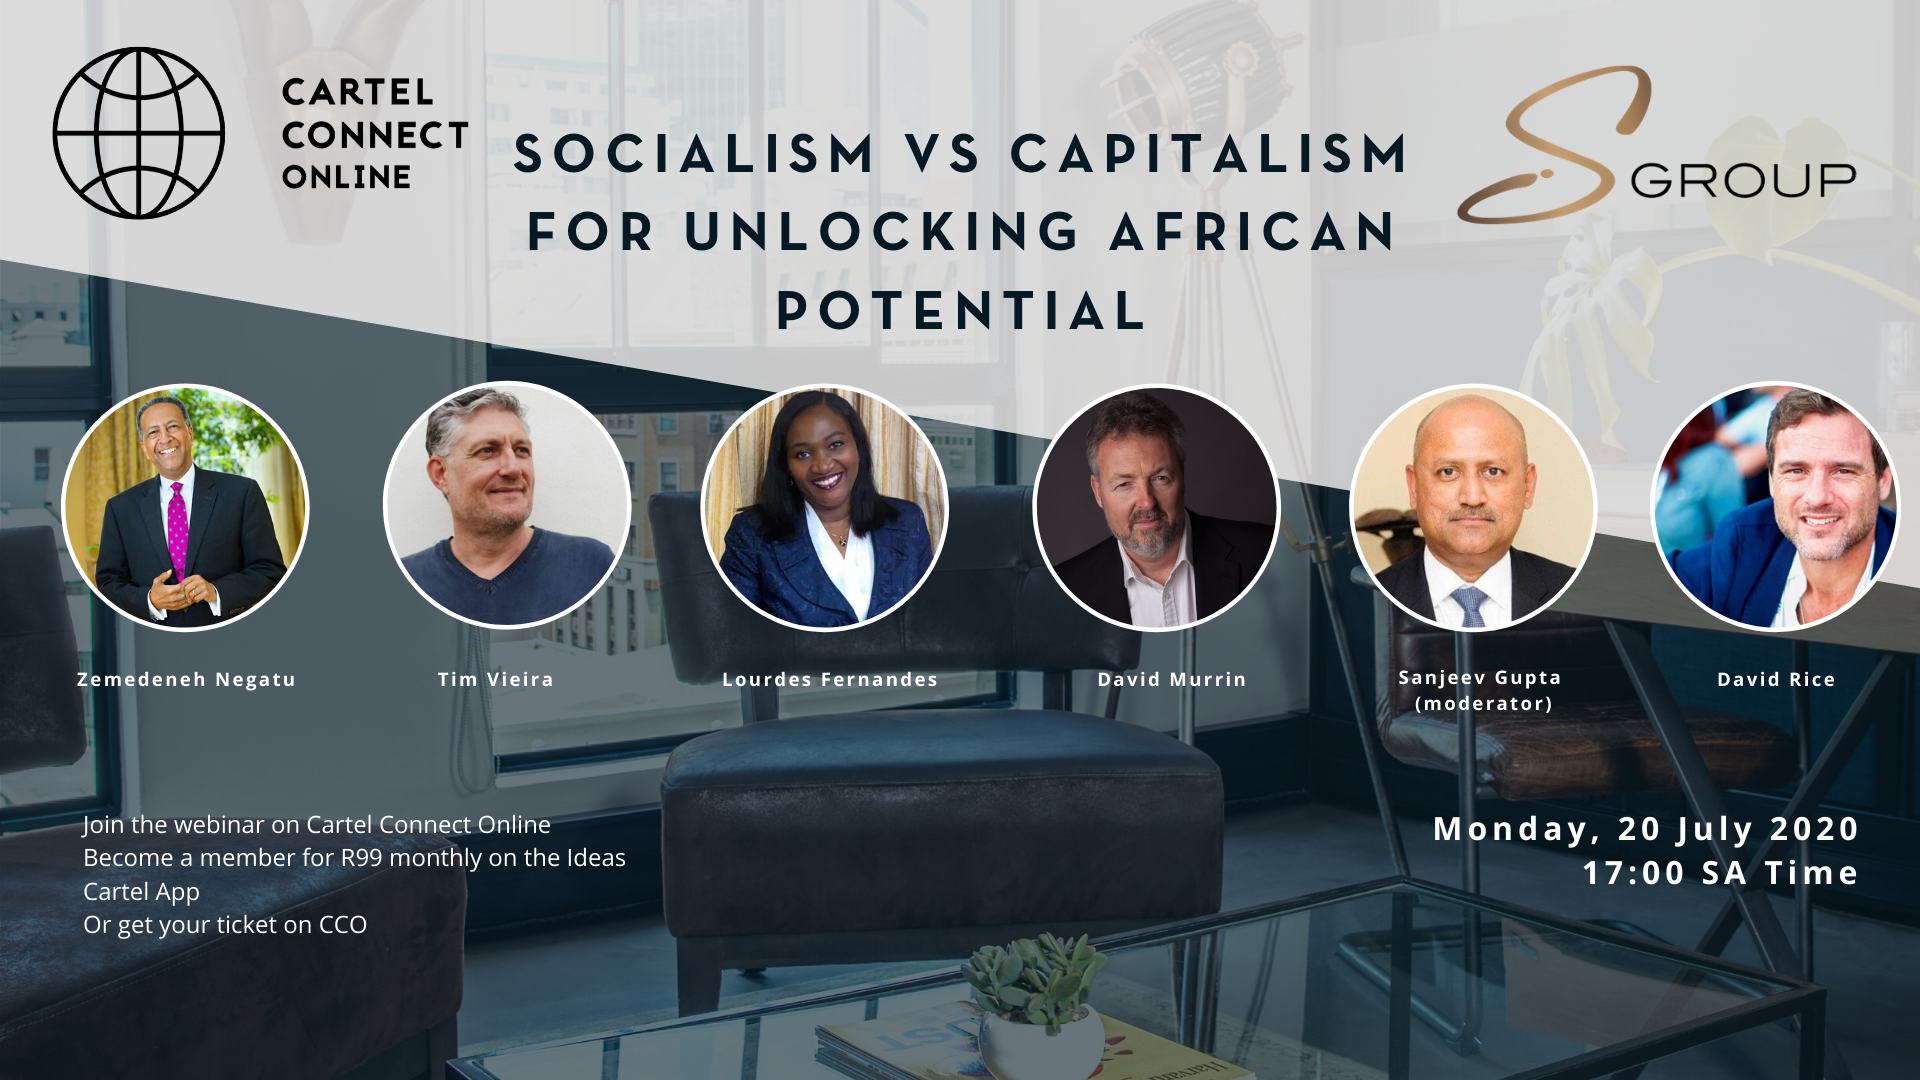 Socialism VS Capitalism for Unlocking African Potential -